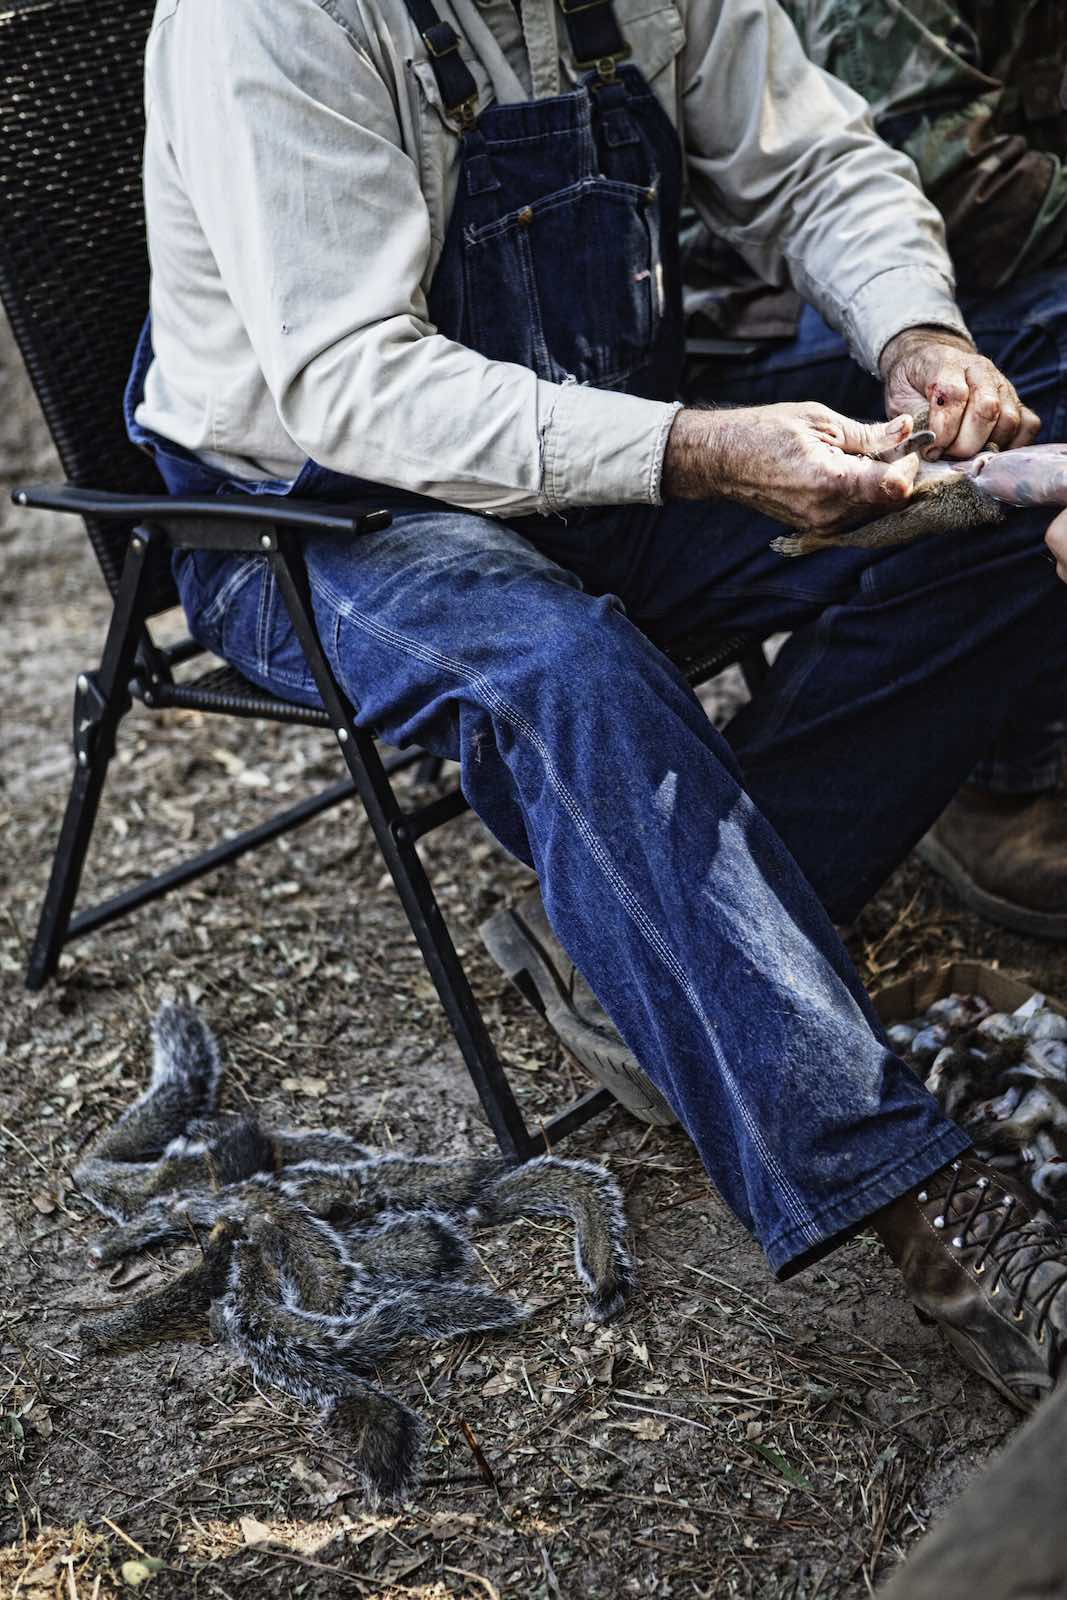 Jody Horton Photography - Hunter sitting next to squirrel tails while skinning the hunt.